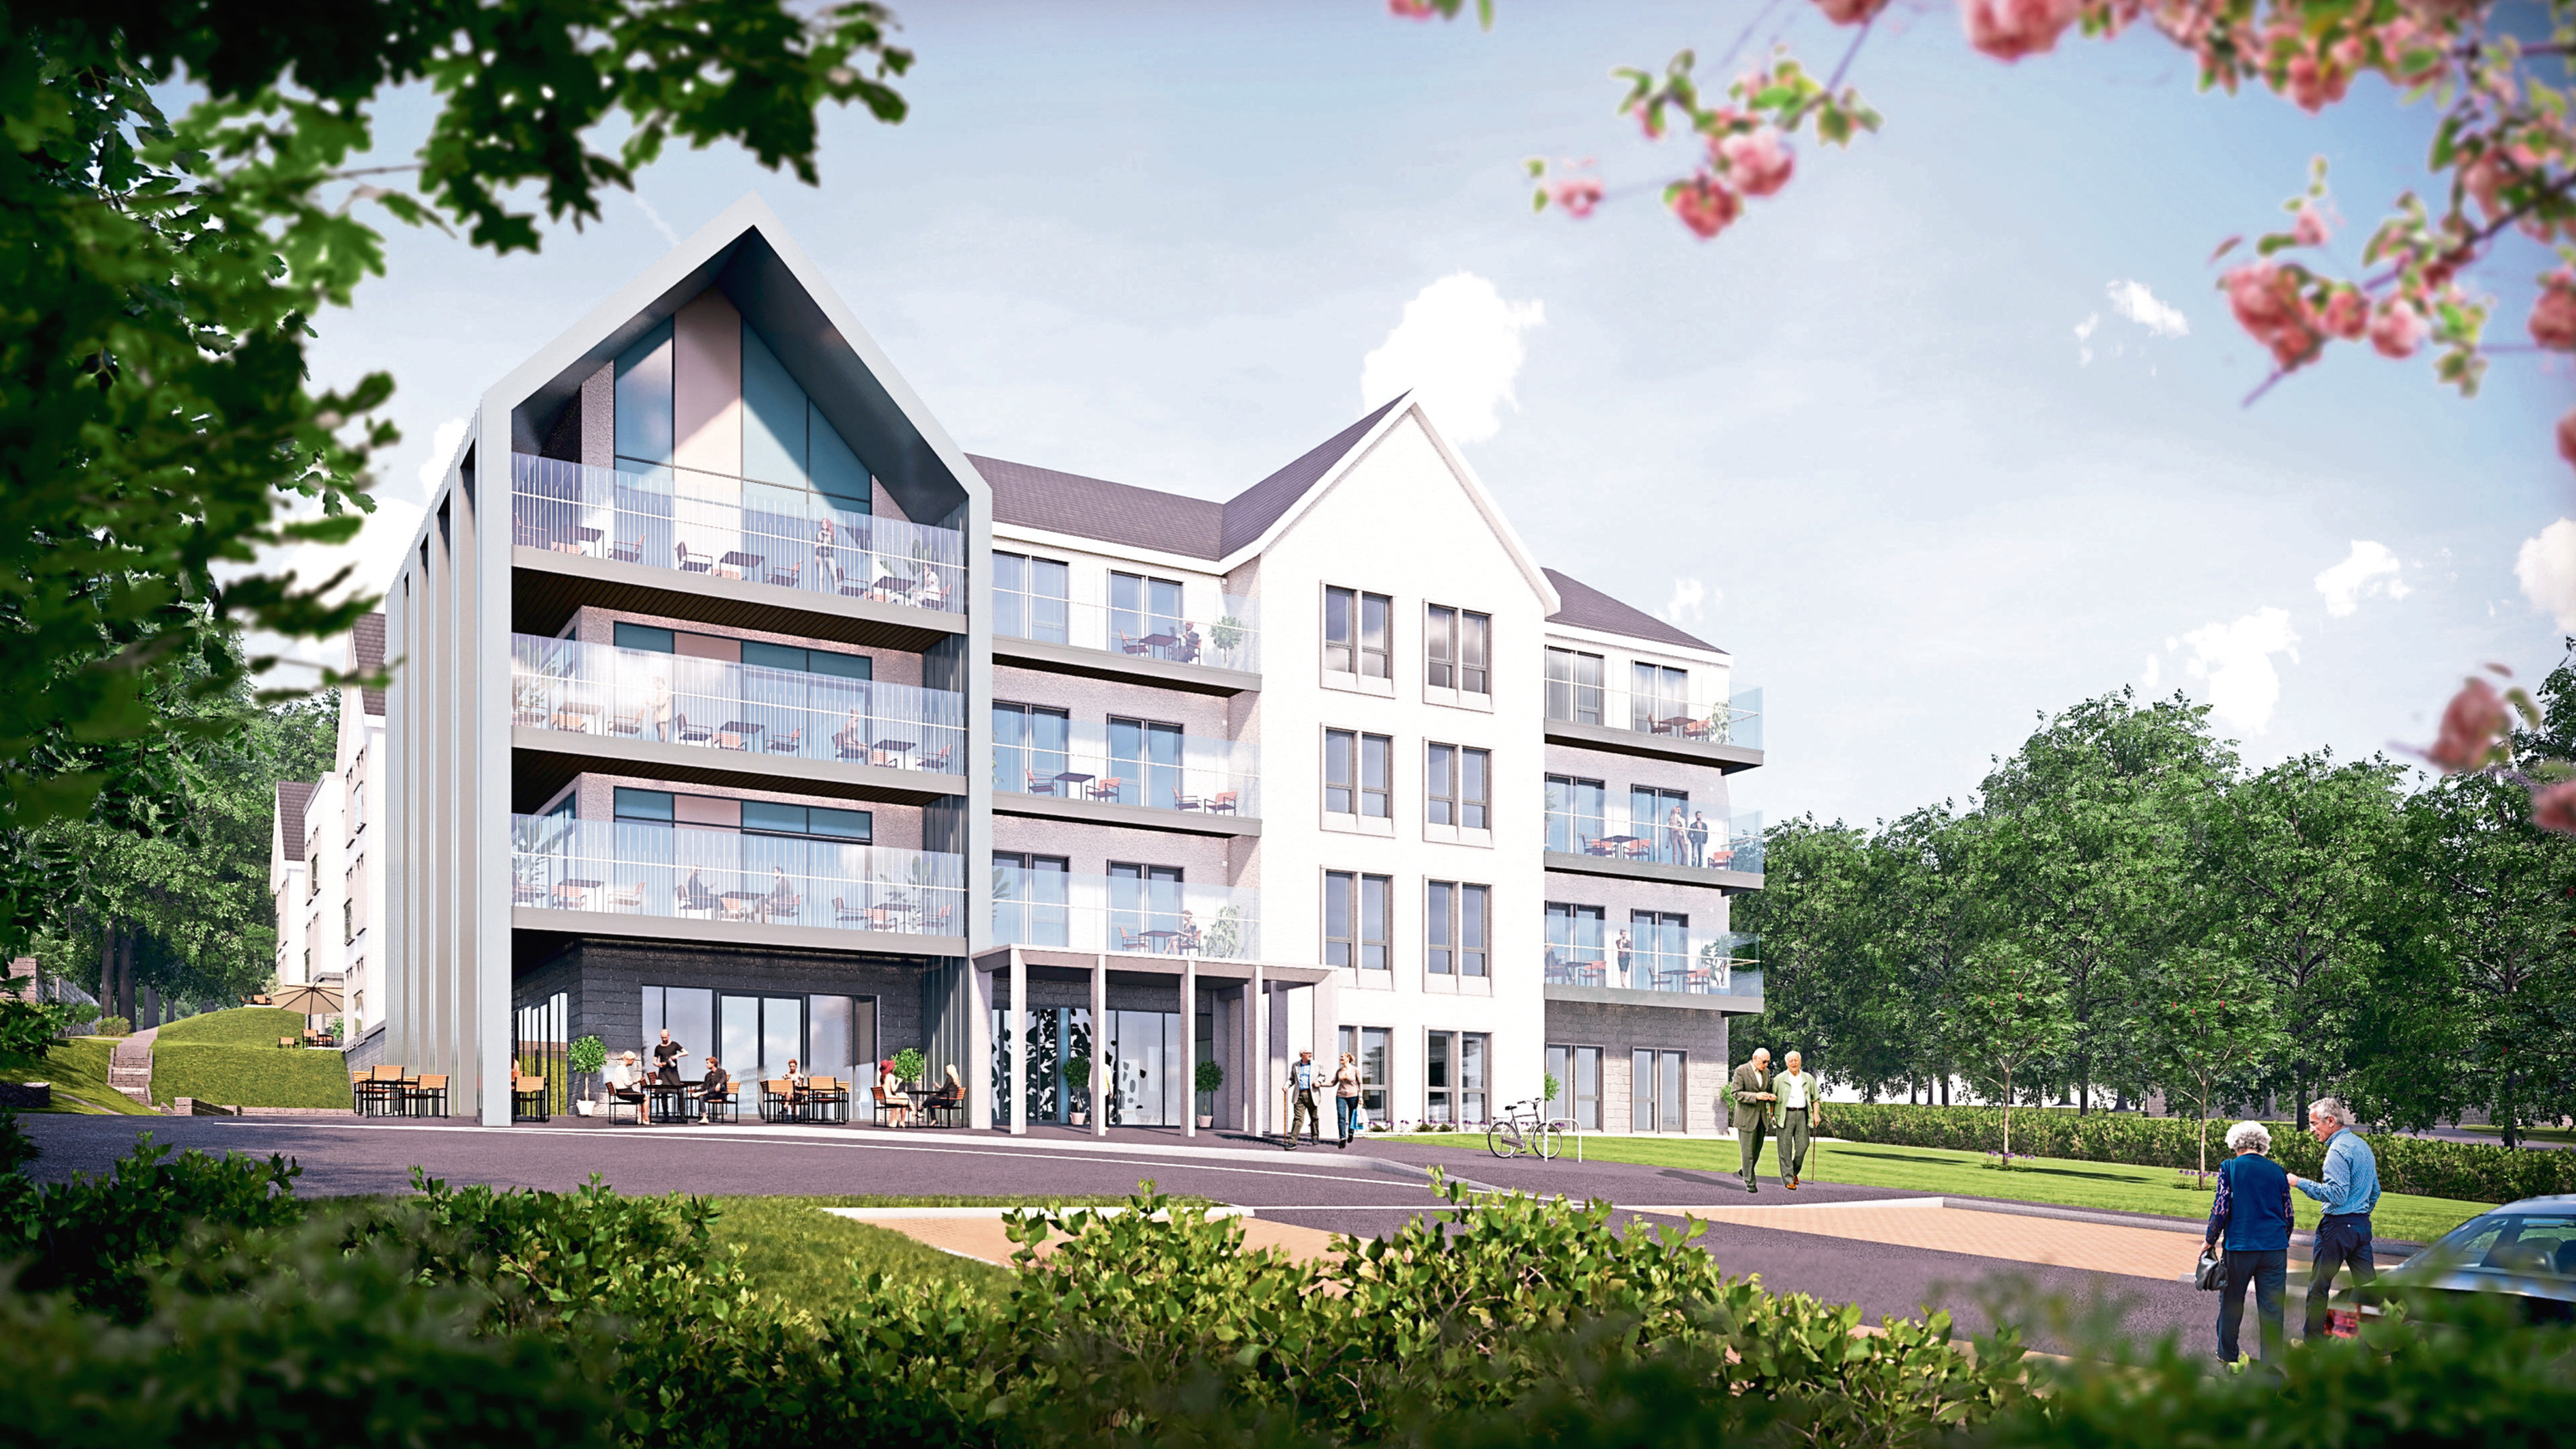 The proposed care home next to the Marcliffe Hotel